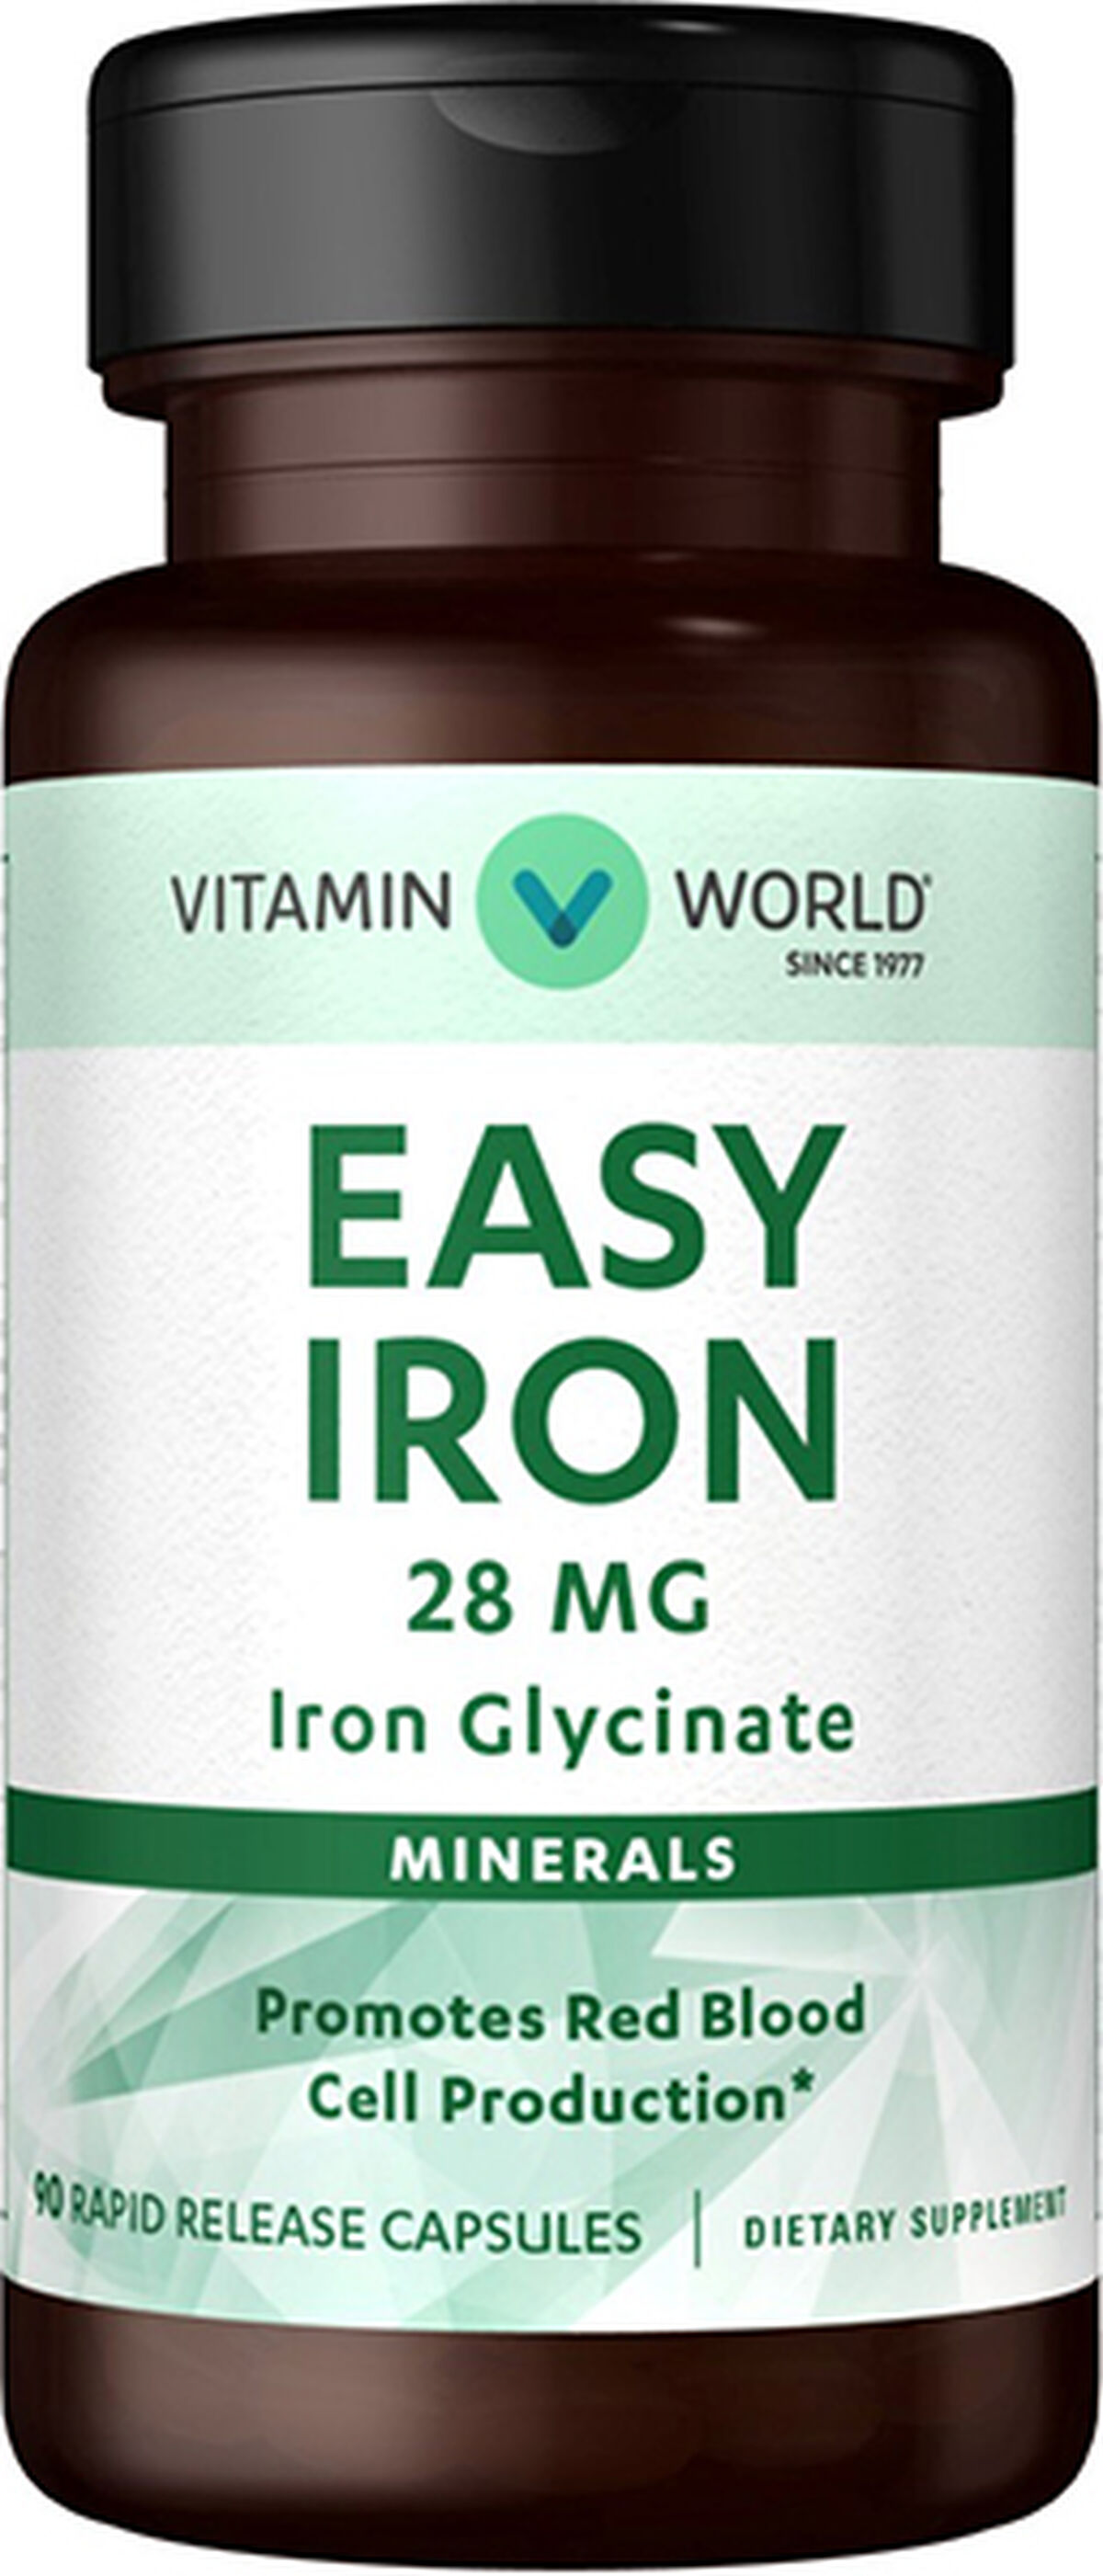 Easy Iron - Iron Glycinate 28 mg. | Mineral Supplement | Vitamin World | Tuggl